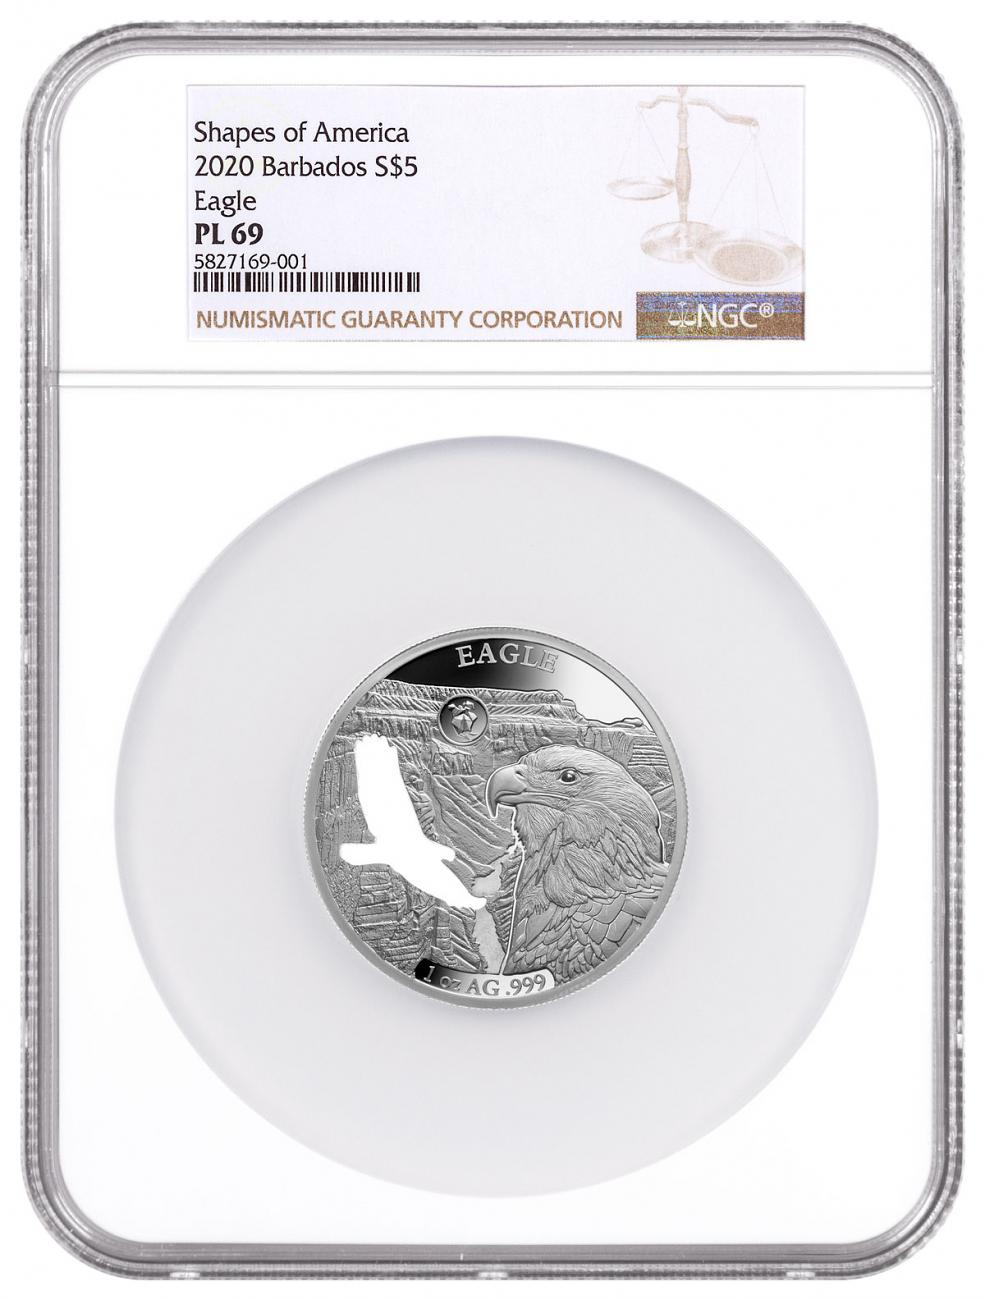 2020 Barbados Shapes of America - Cut-Out High Relief 1 oz Proof-Like Silver $5 Coin Eagle NGC PL69